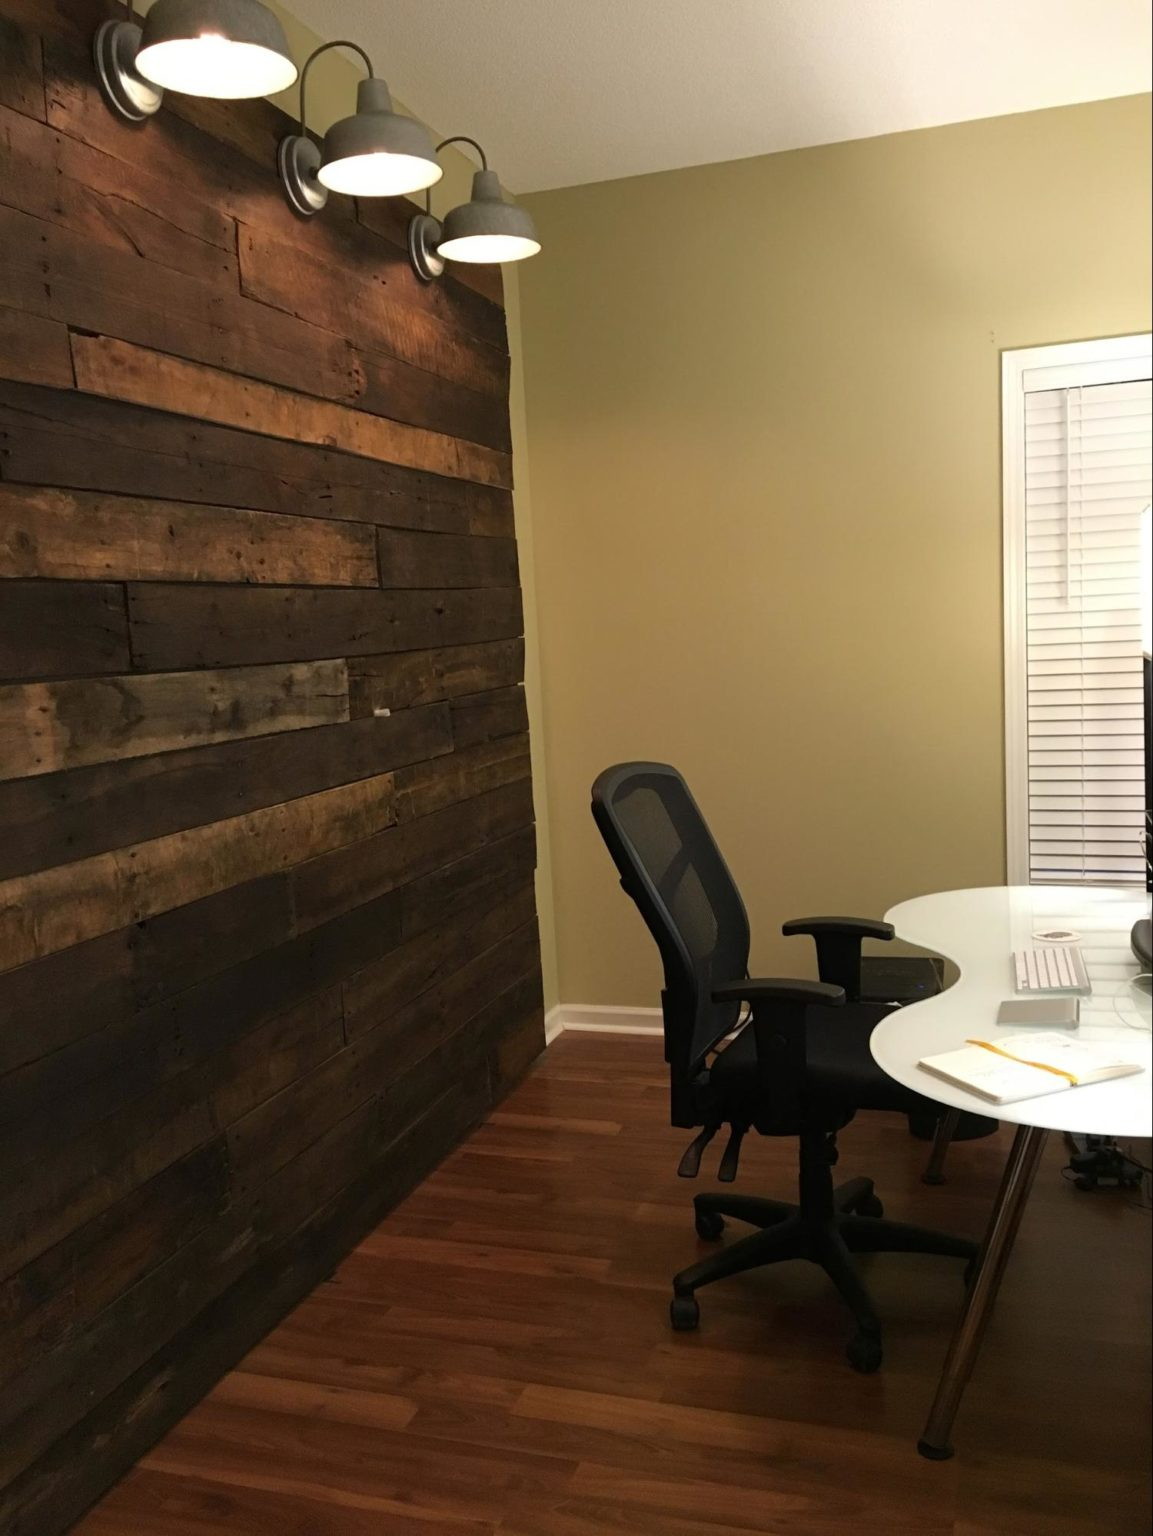 How to build wood wall background for home office - Anyvoo - Wood wall size compared to wall